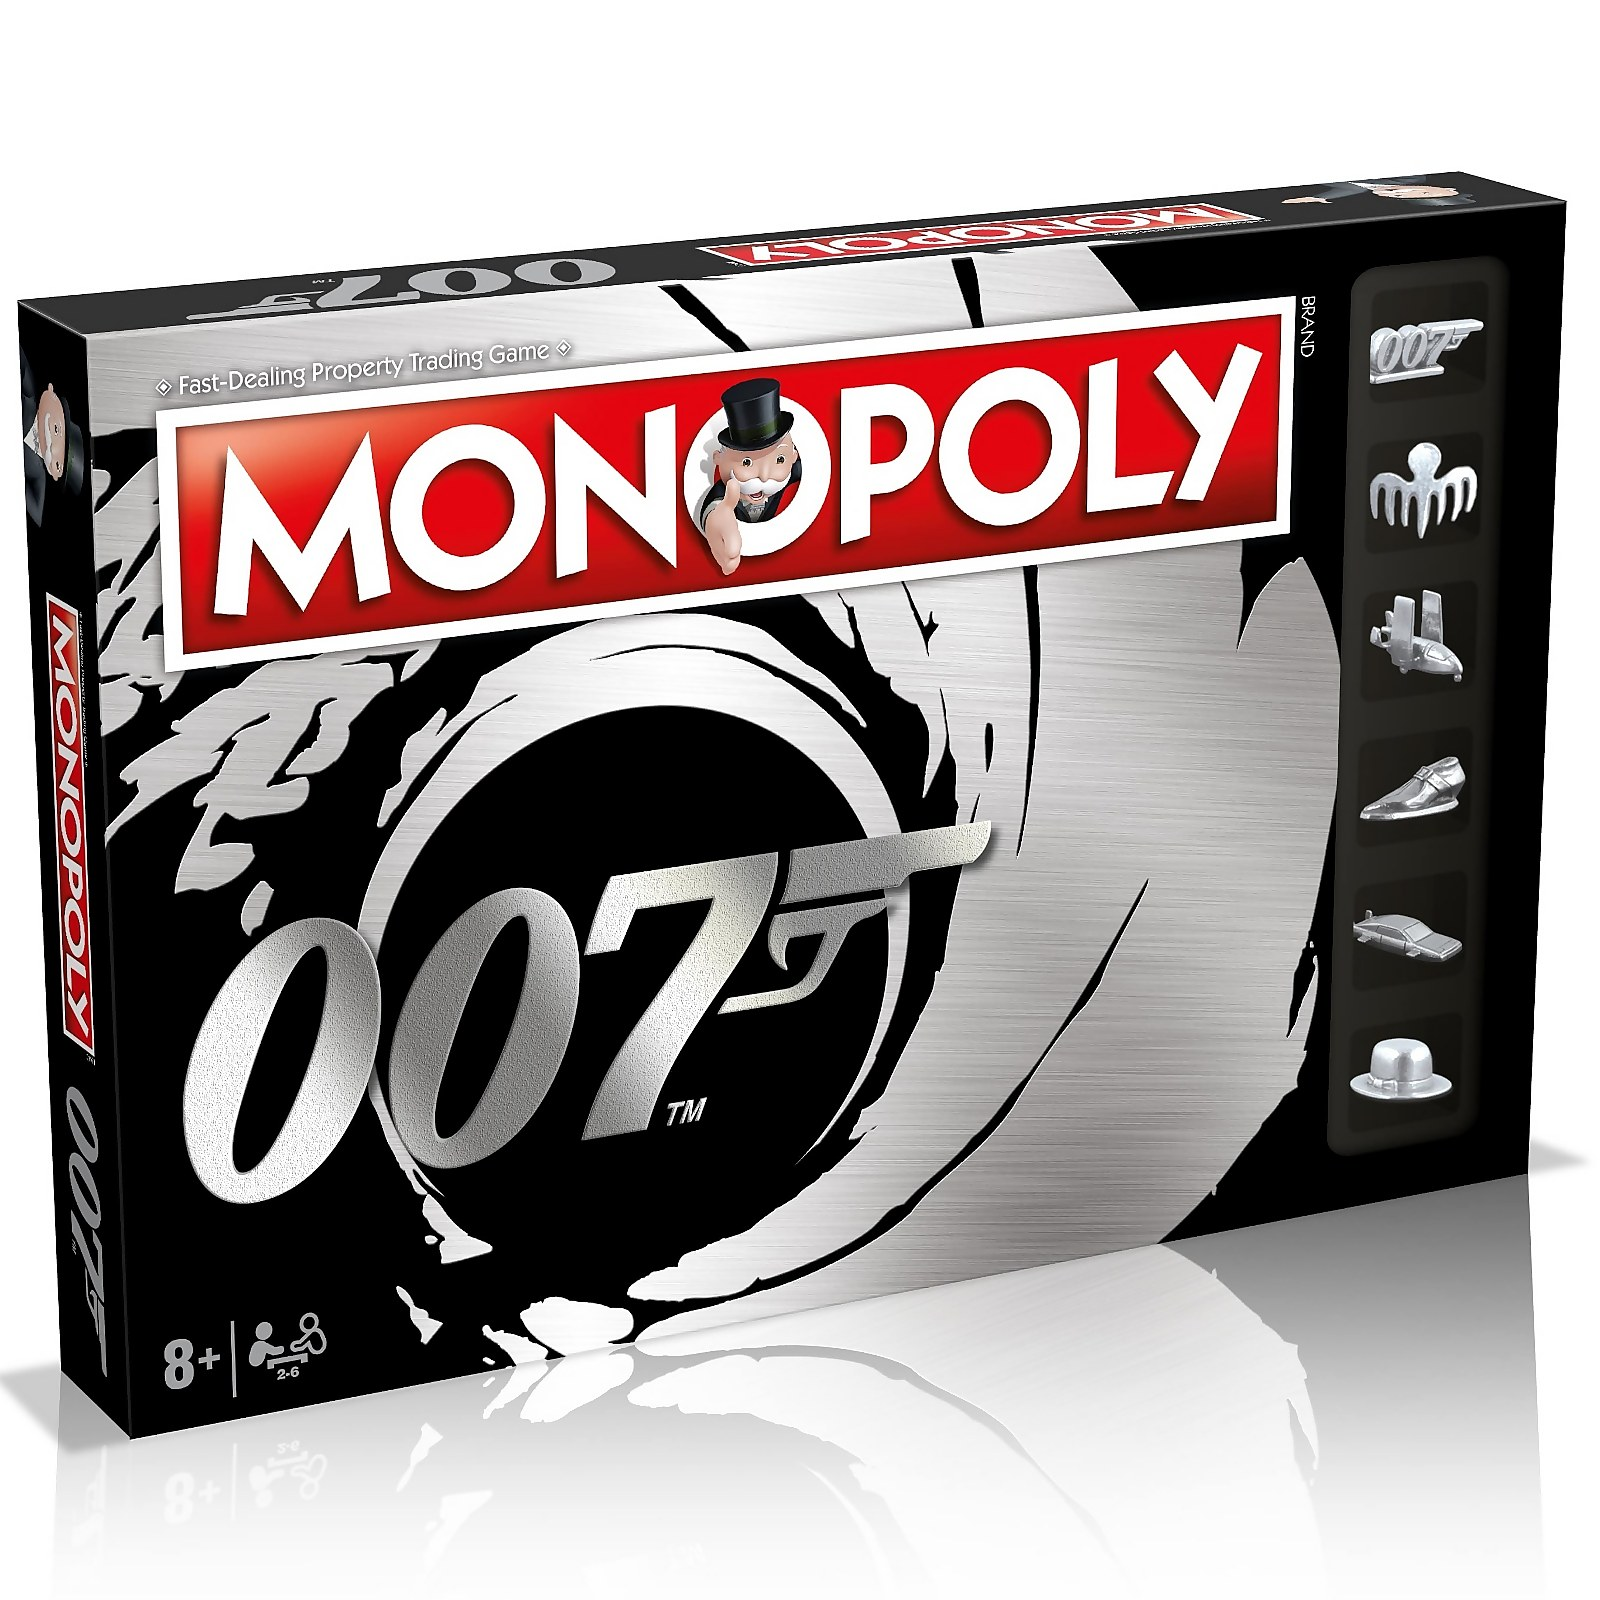 Image of Monopoly Board Game - James Bond Edition